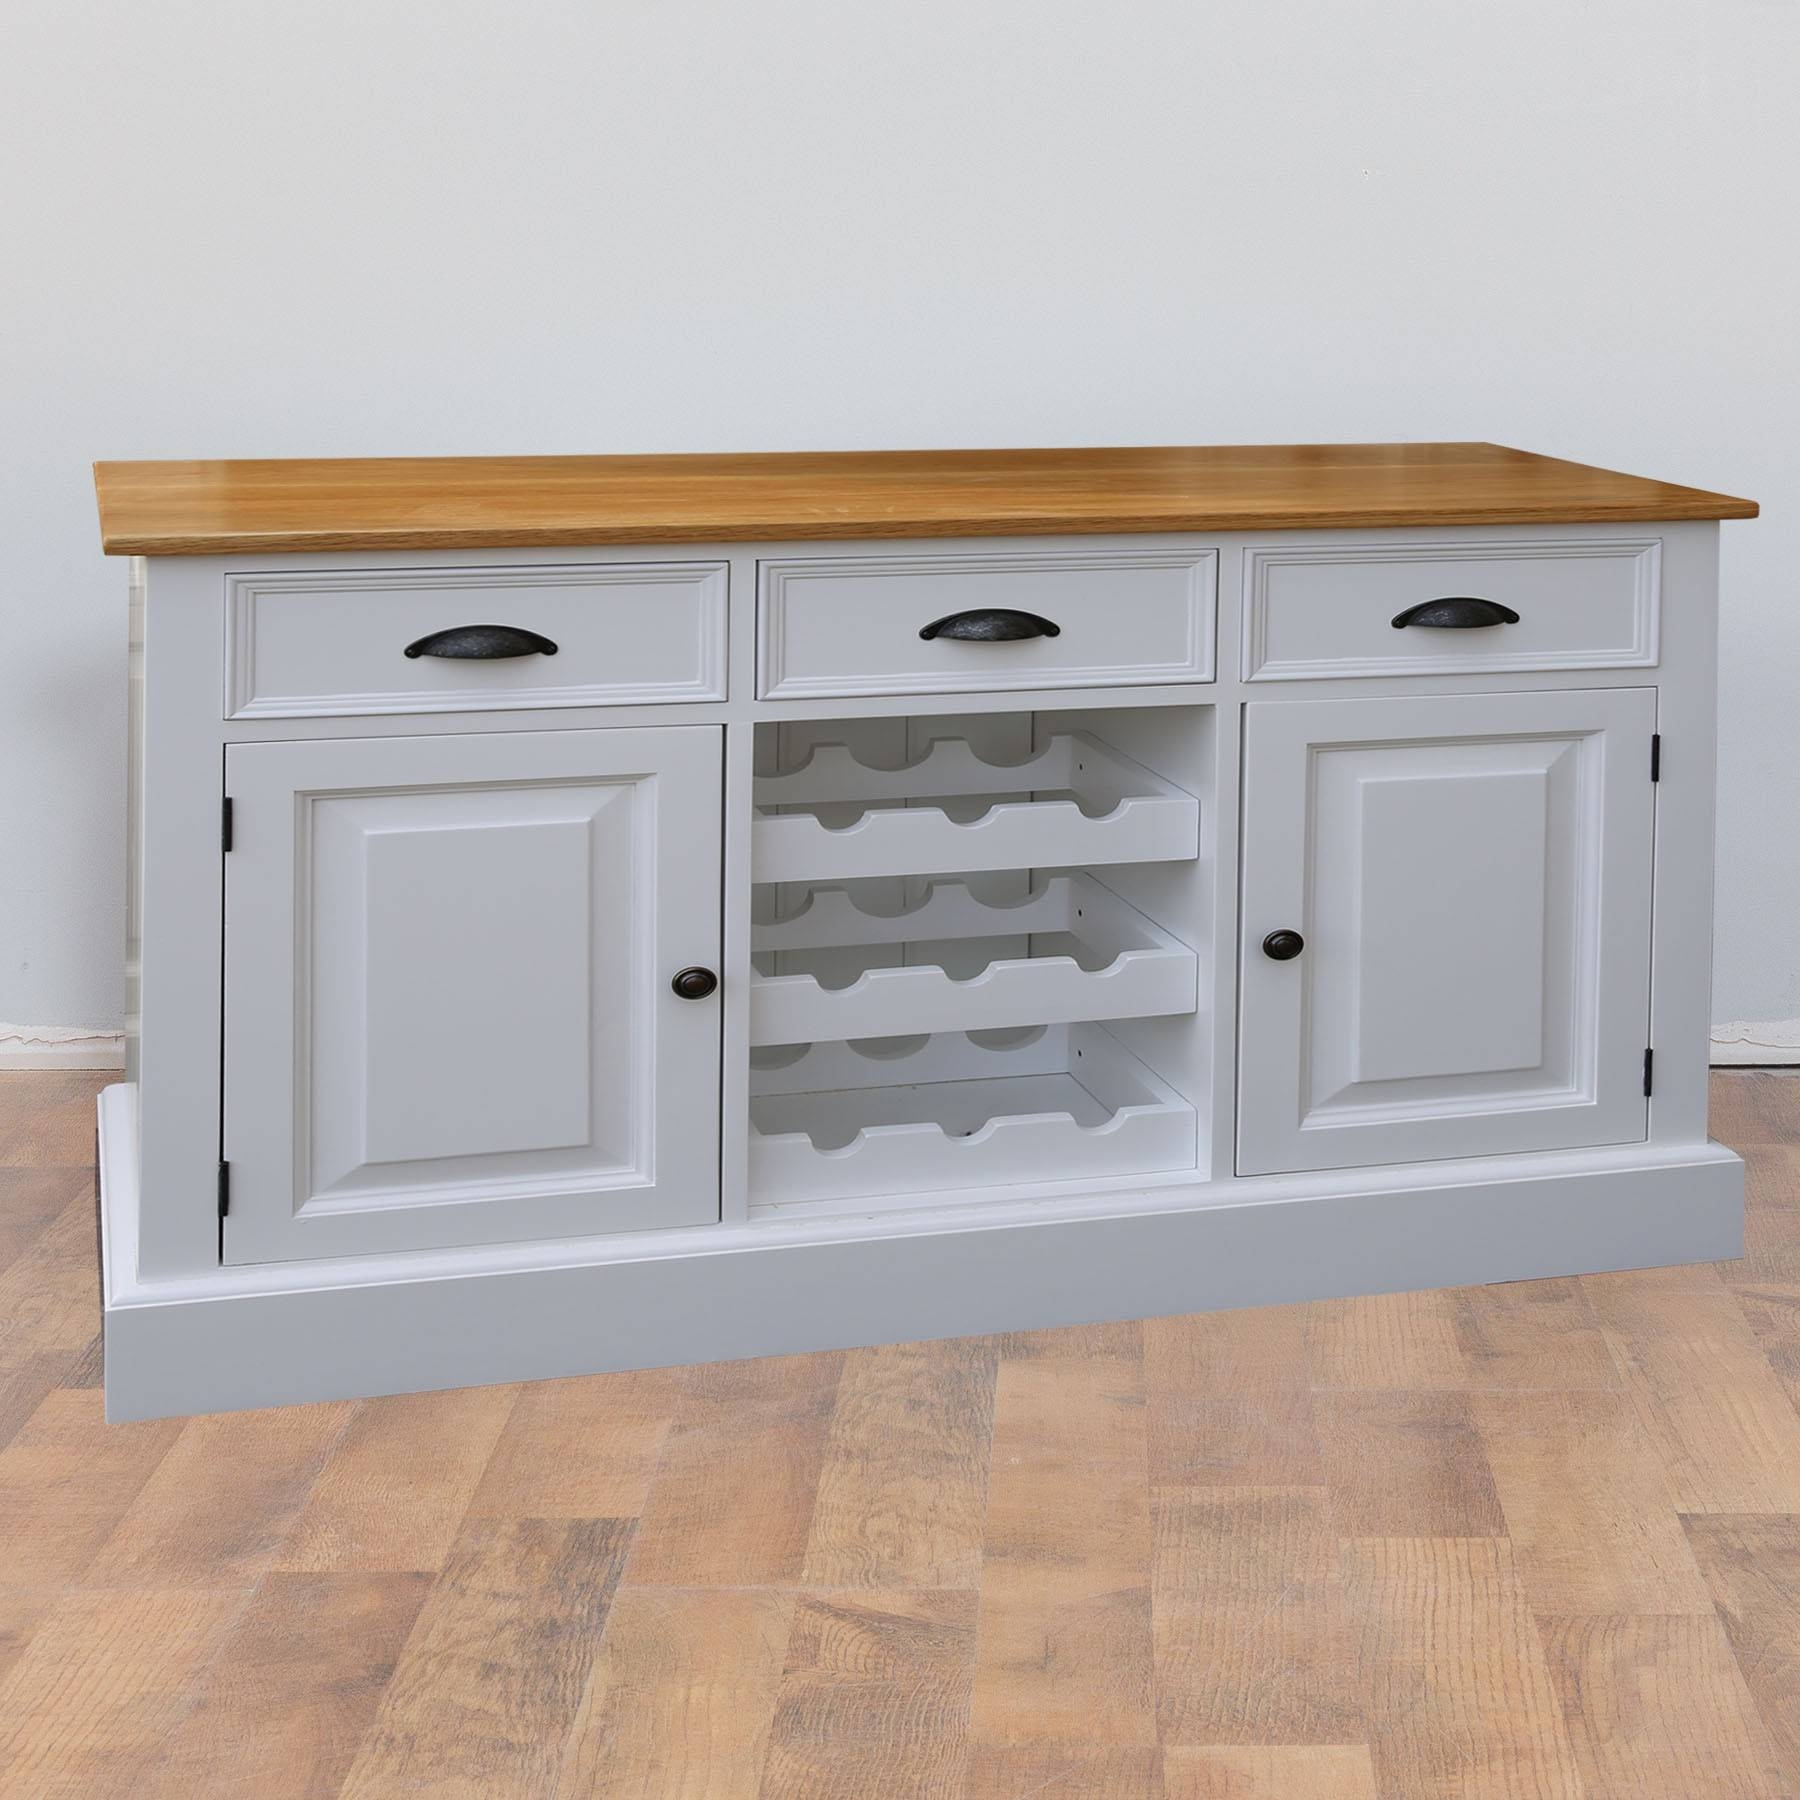 Mottisfont Solid Pine Painted Provence Sideboard | Furniture4Yourhome Throughout Sideboards For Sale (View 14 of 30)